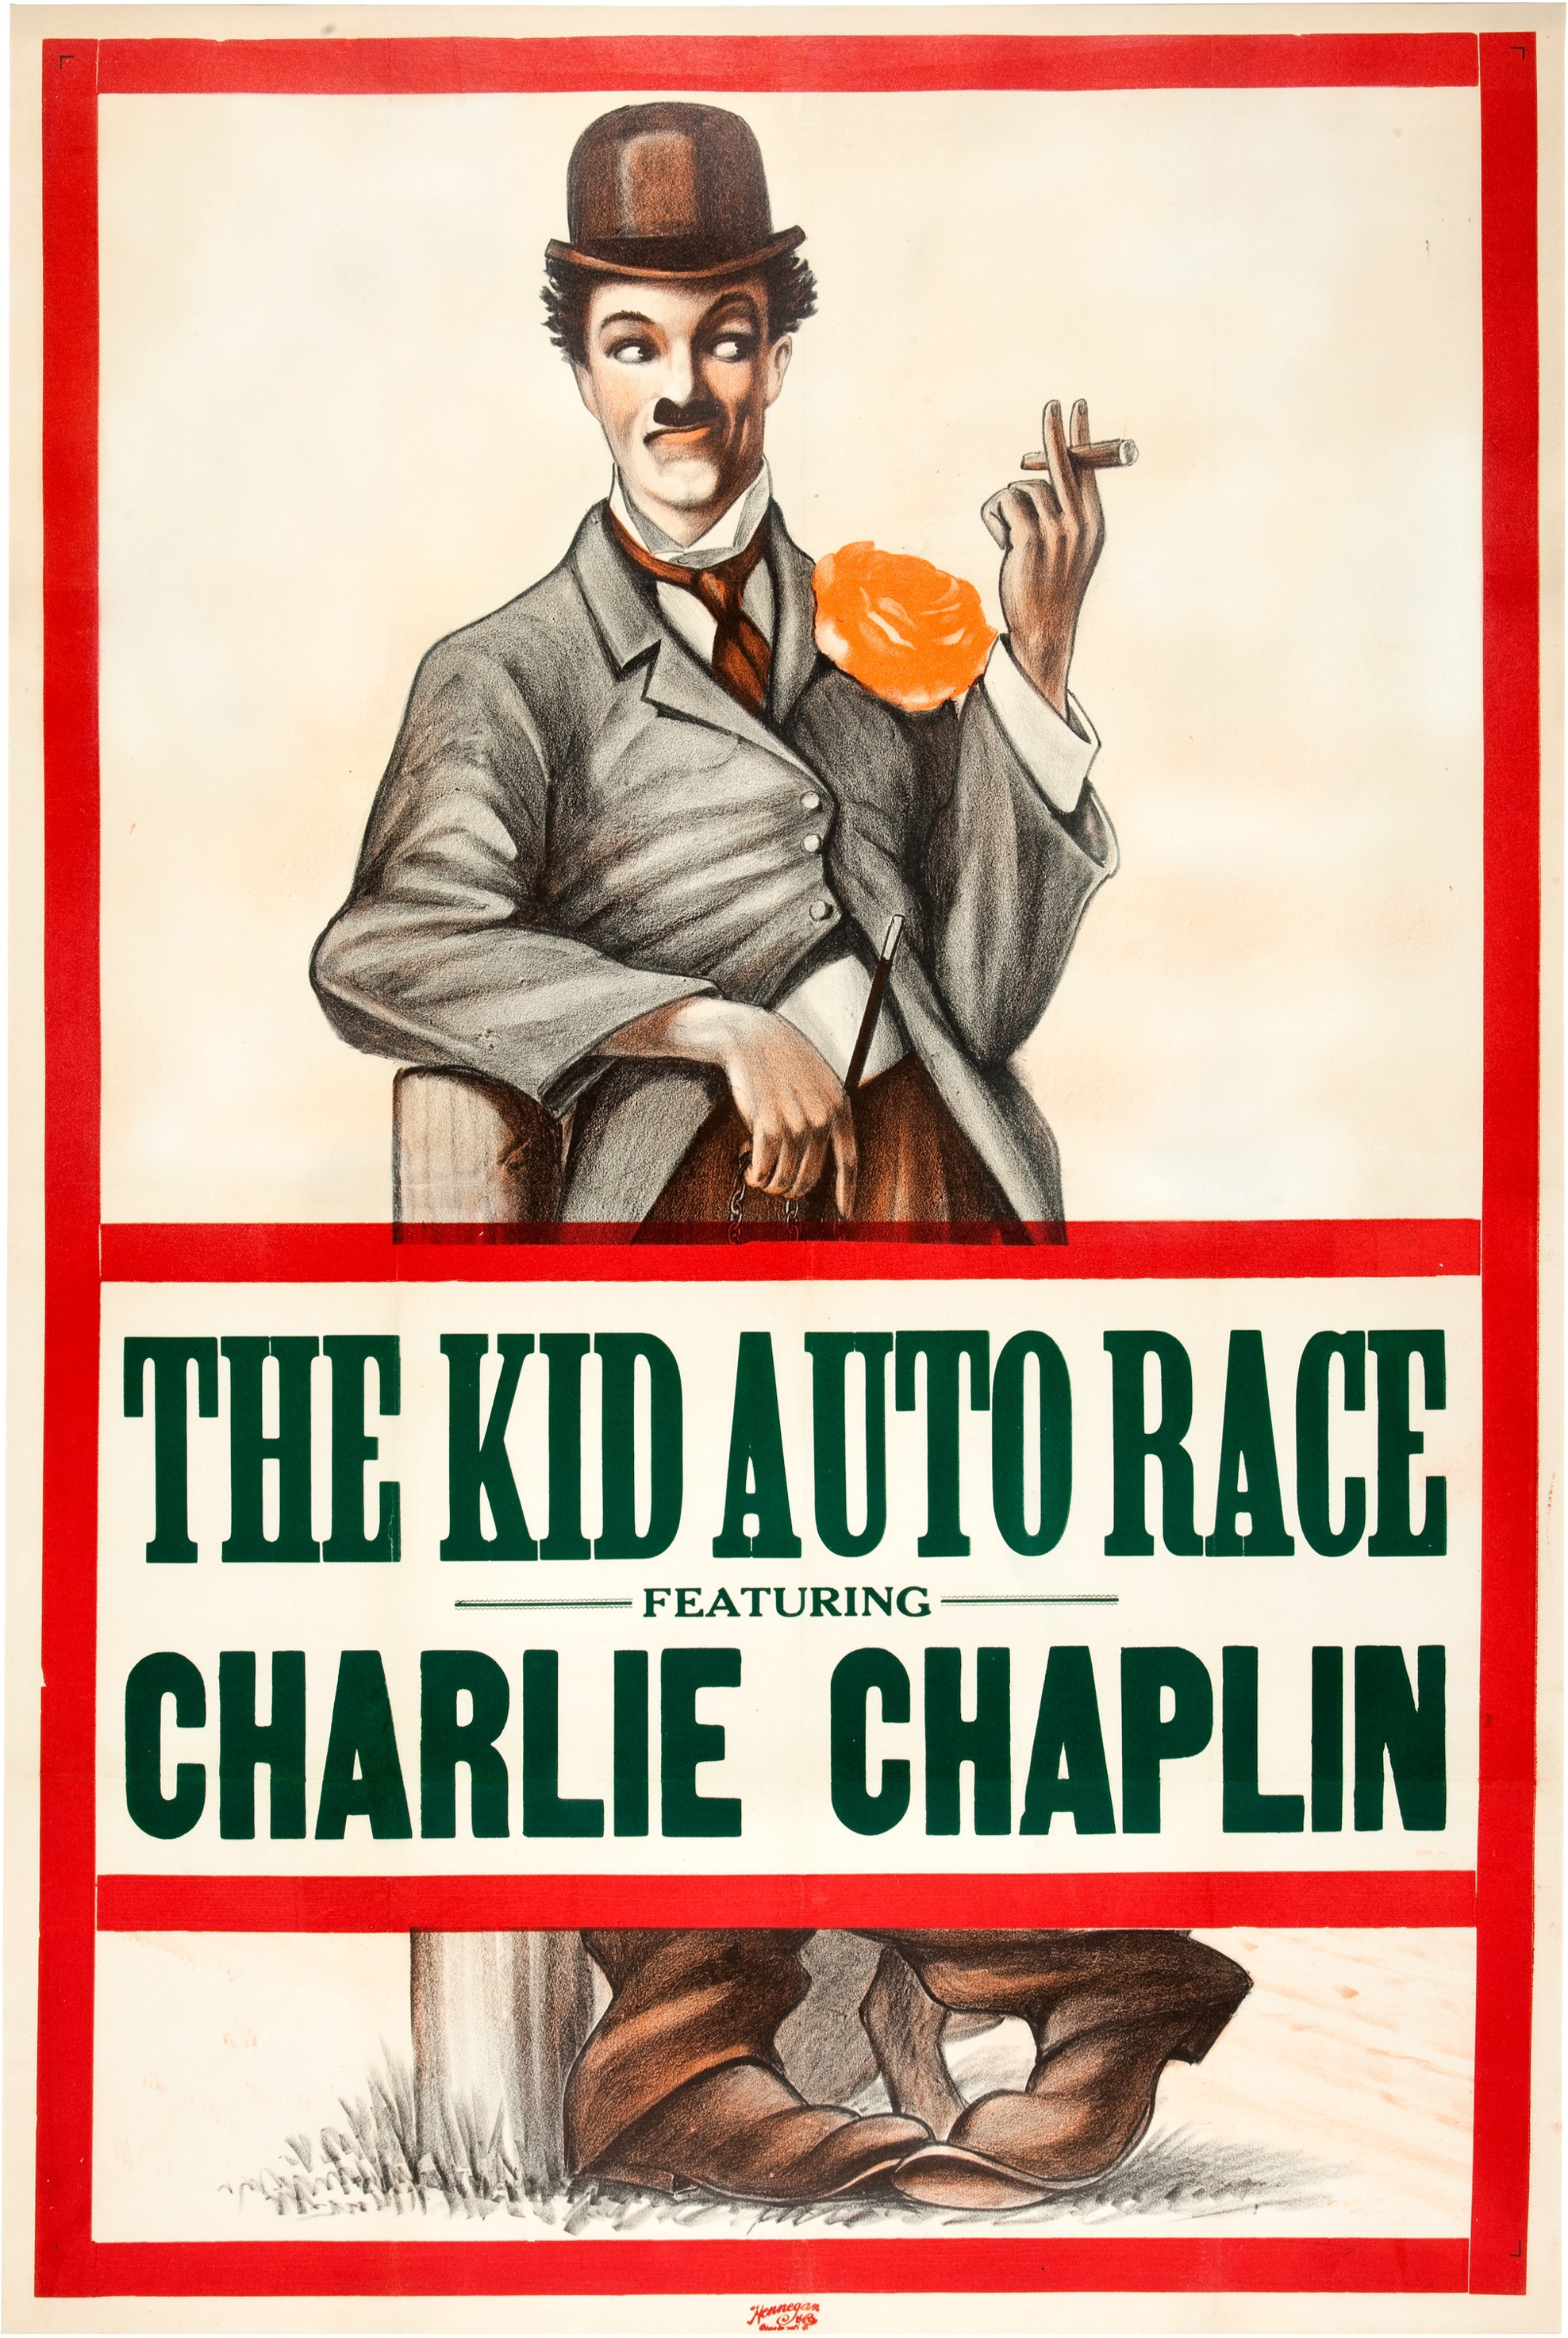 Kid Auto Races at Venice aka The Kid Auto Race (1914) US one sheet poster. Chaplin's second released film and the one in which the Little Tramp made his first public appearance. This poster's a real rarity and possibly the only surviving example, though it and others for his first few films were adapted from a generic variant. Relatively few copies were printed as Chaplin was not yet famous, which explains why it looks so little like him– but all that would change immeasurably by the end of his Keystone Year.